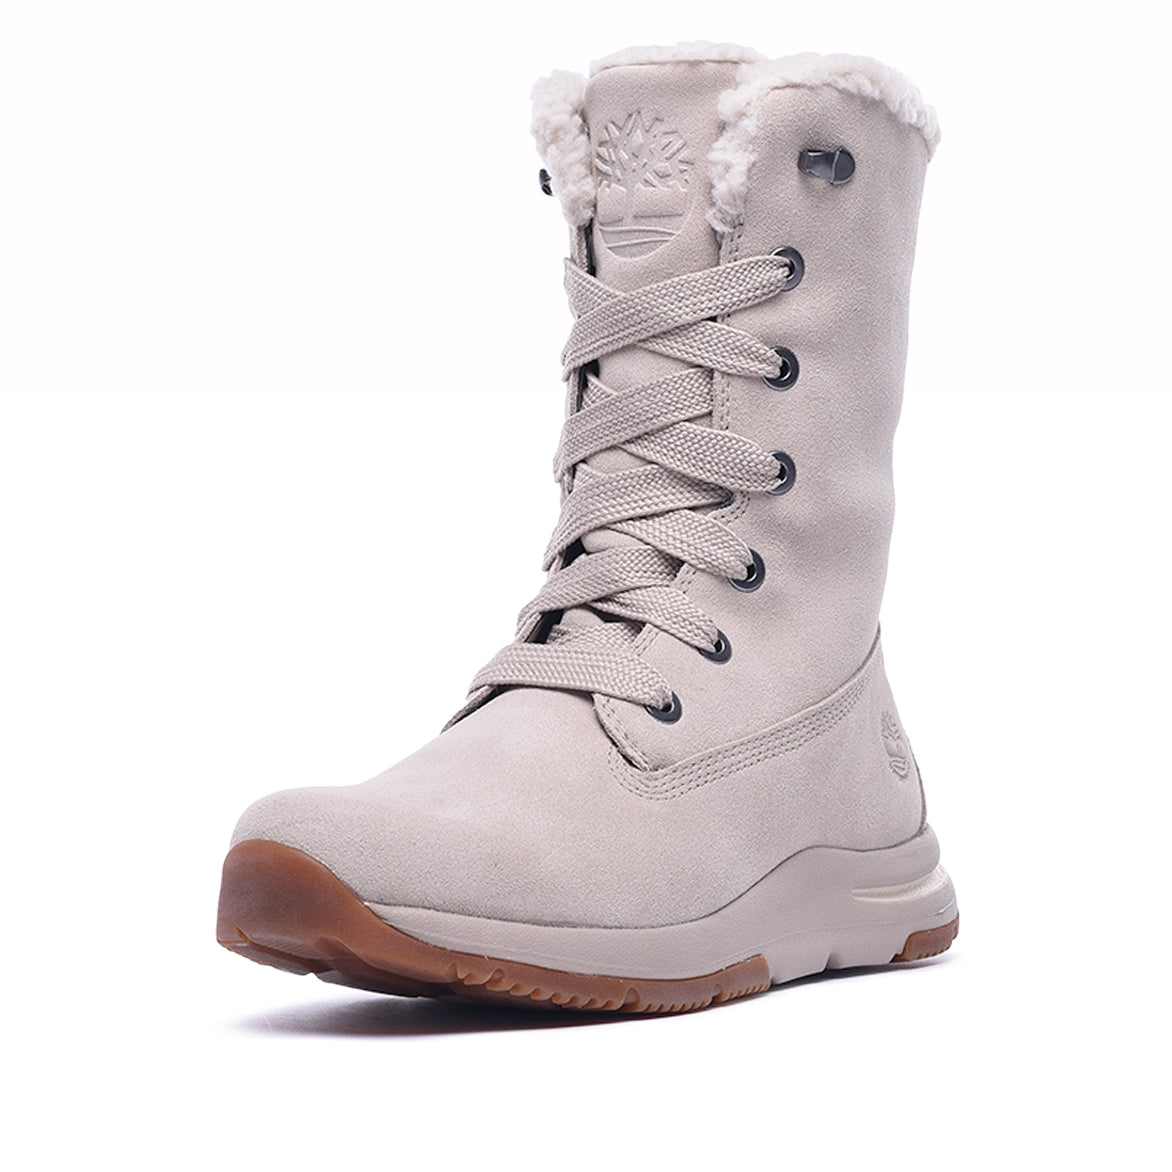 WMNS MABEL TOWN MID WATERPROOF BOOT - LIGHT TAUPE